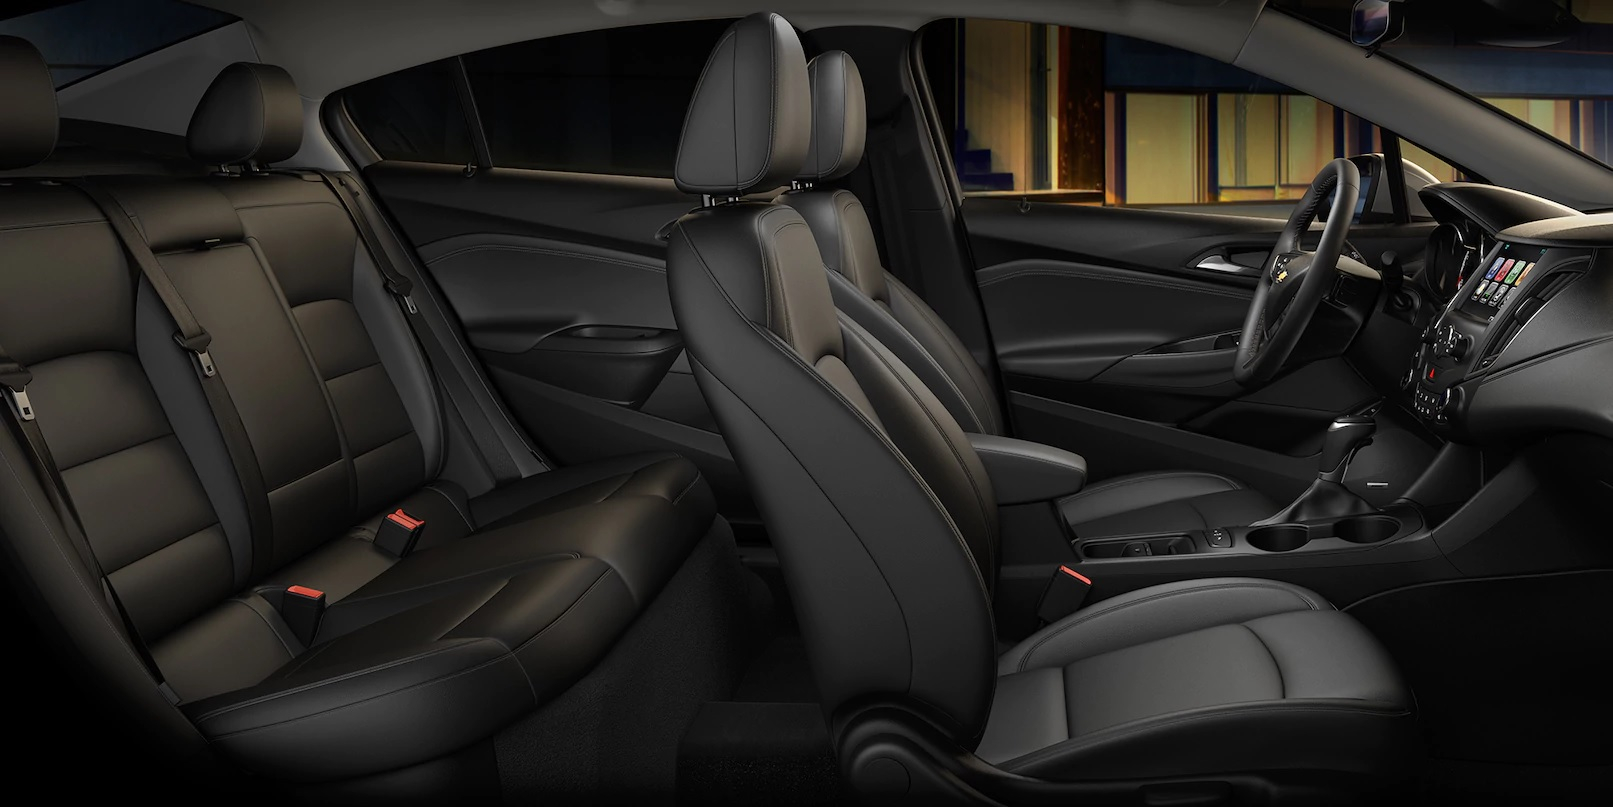 Chevrolet Cruze Owners Manual: Front Seats